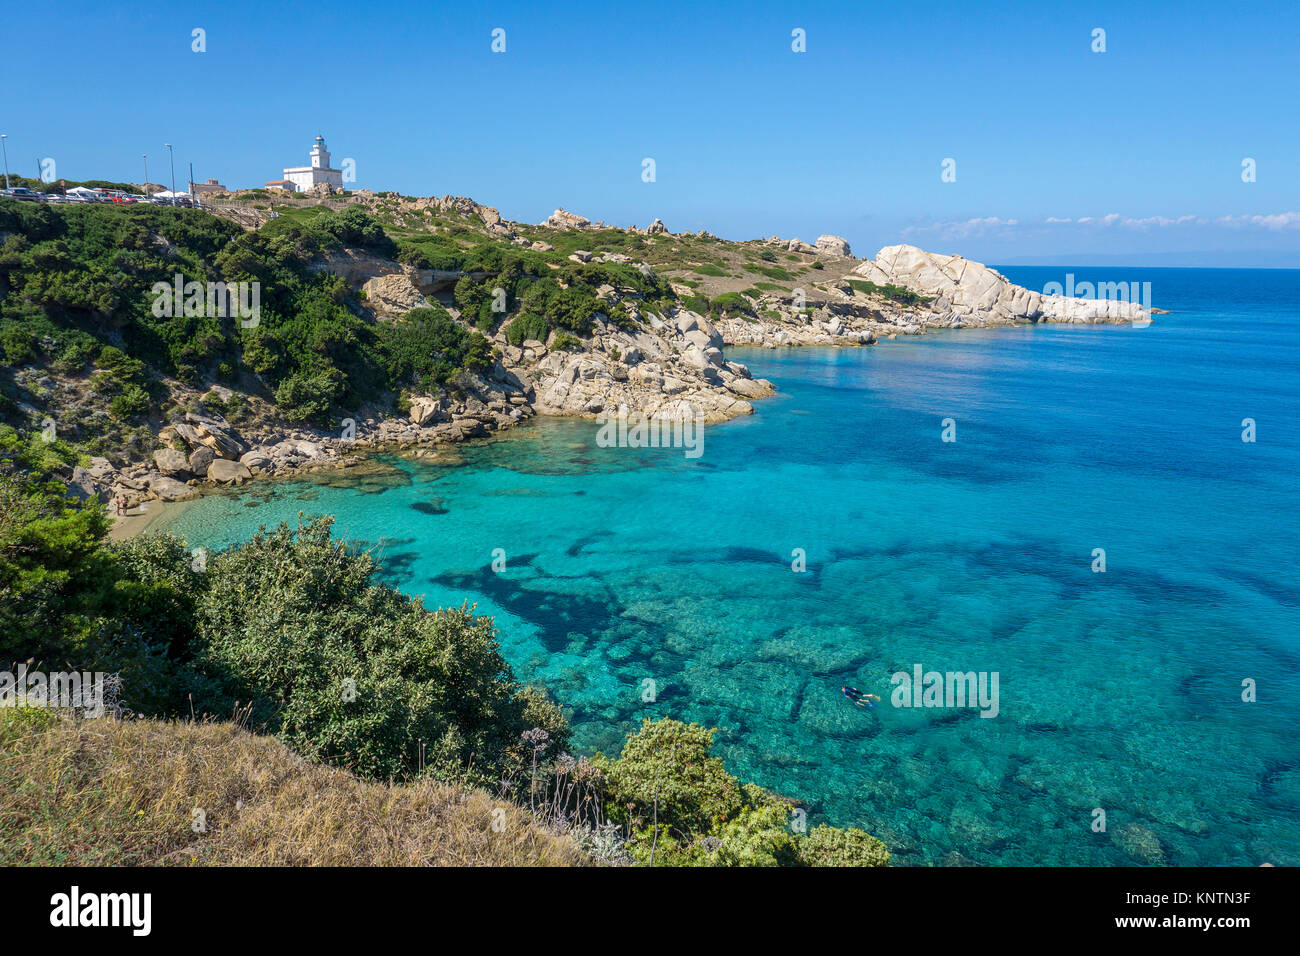 Lighthouse of Capo Testa, Santa Teresa di Gallura, Sardinia, Italy, Mediterranean sea, Europe - Stock Image